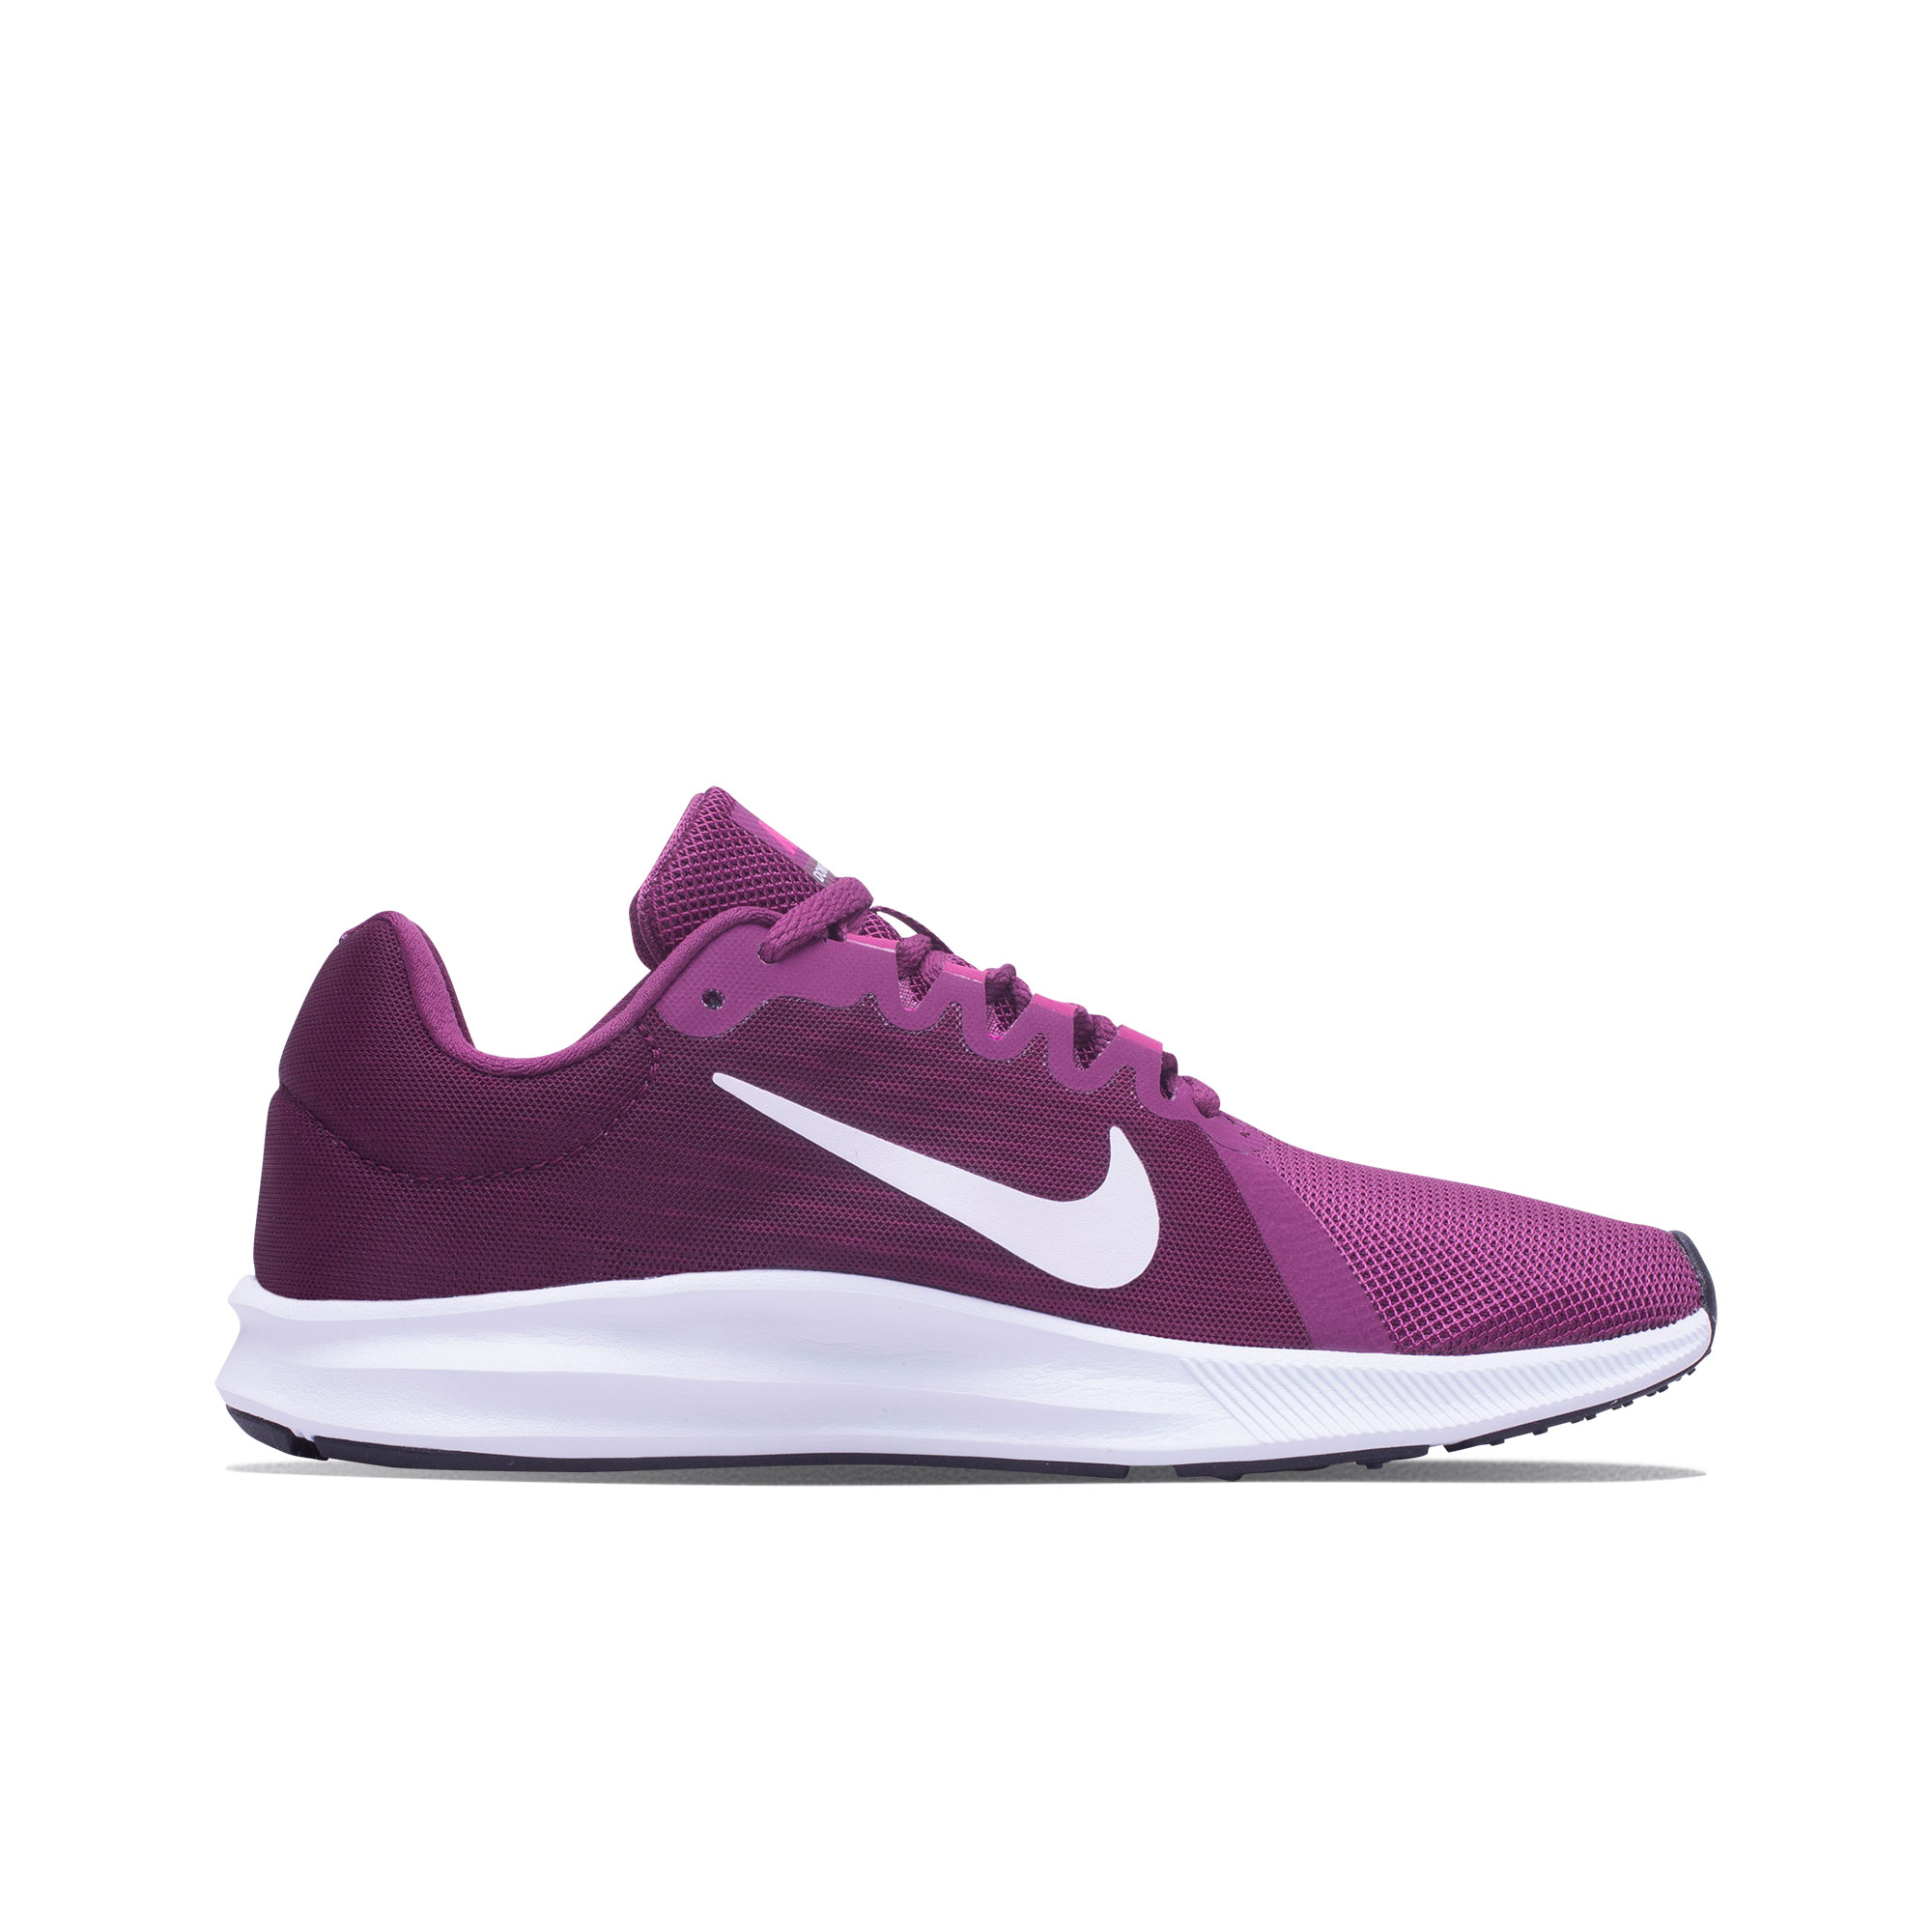 5da67b8c002 Nike Downshifter 8 Ladies Running Shoes Trainers